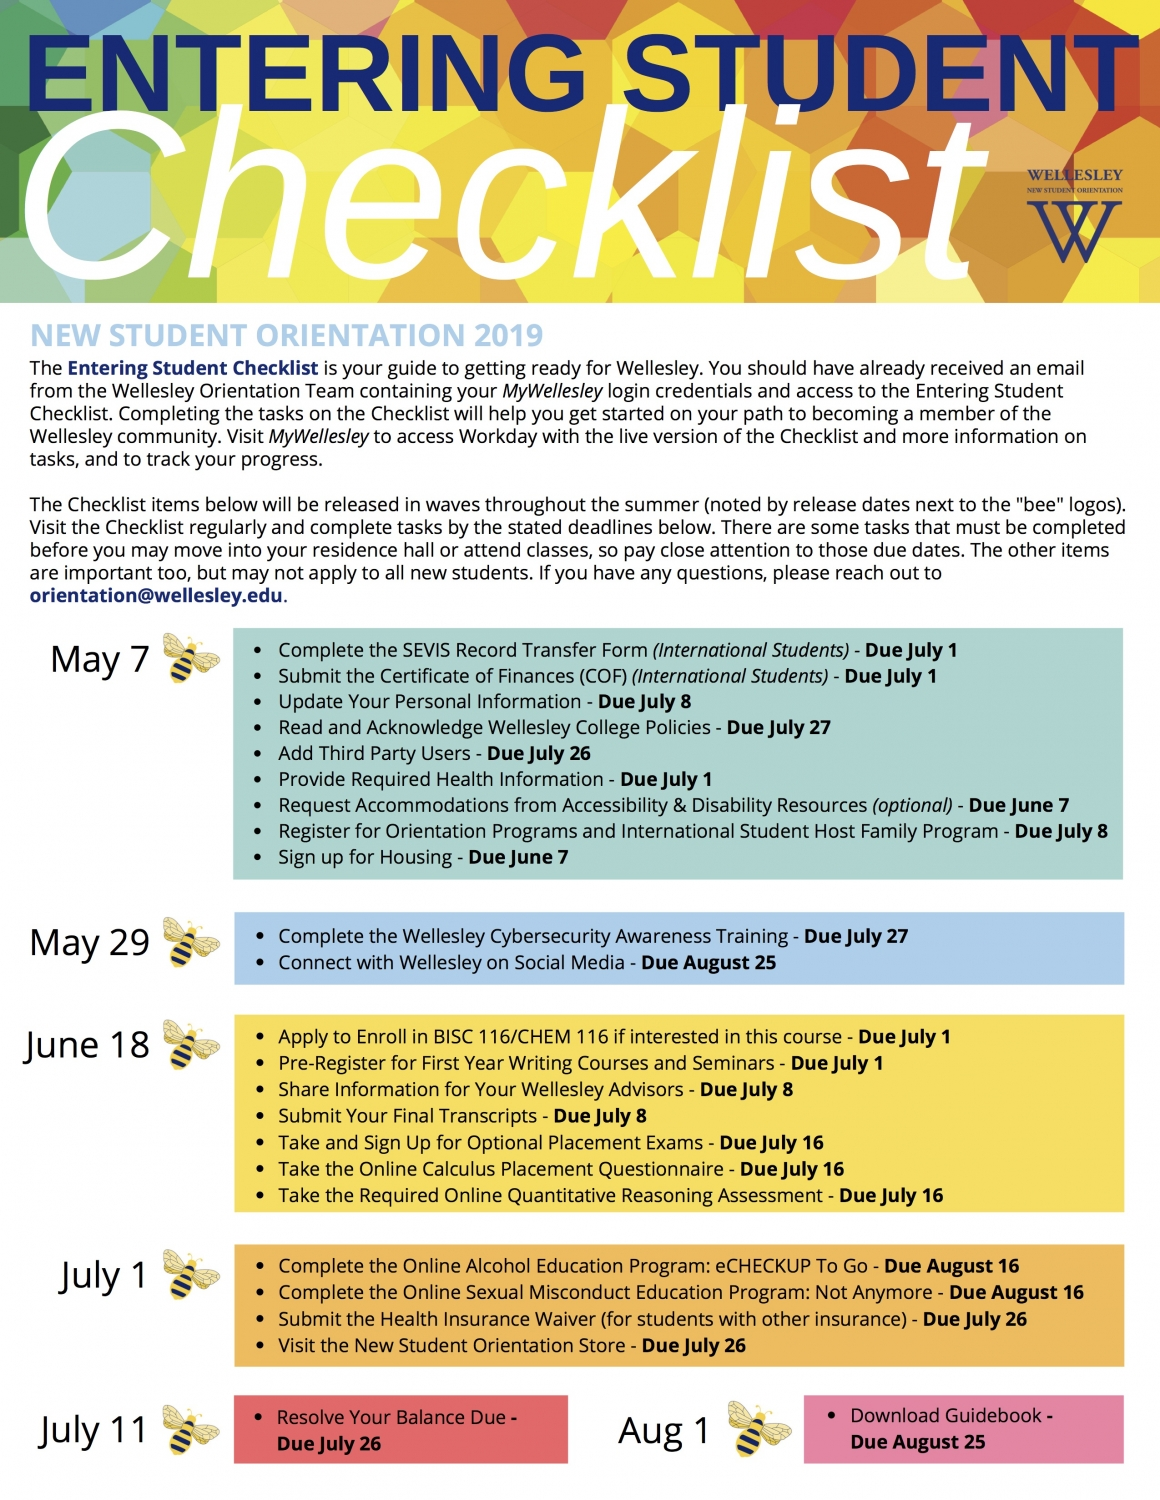 Entering Student Checklist | Wellesley College